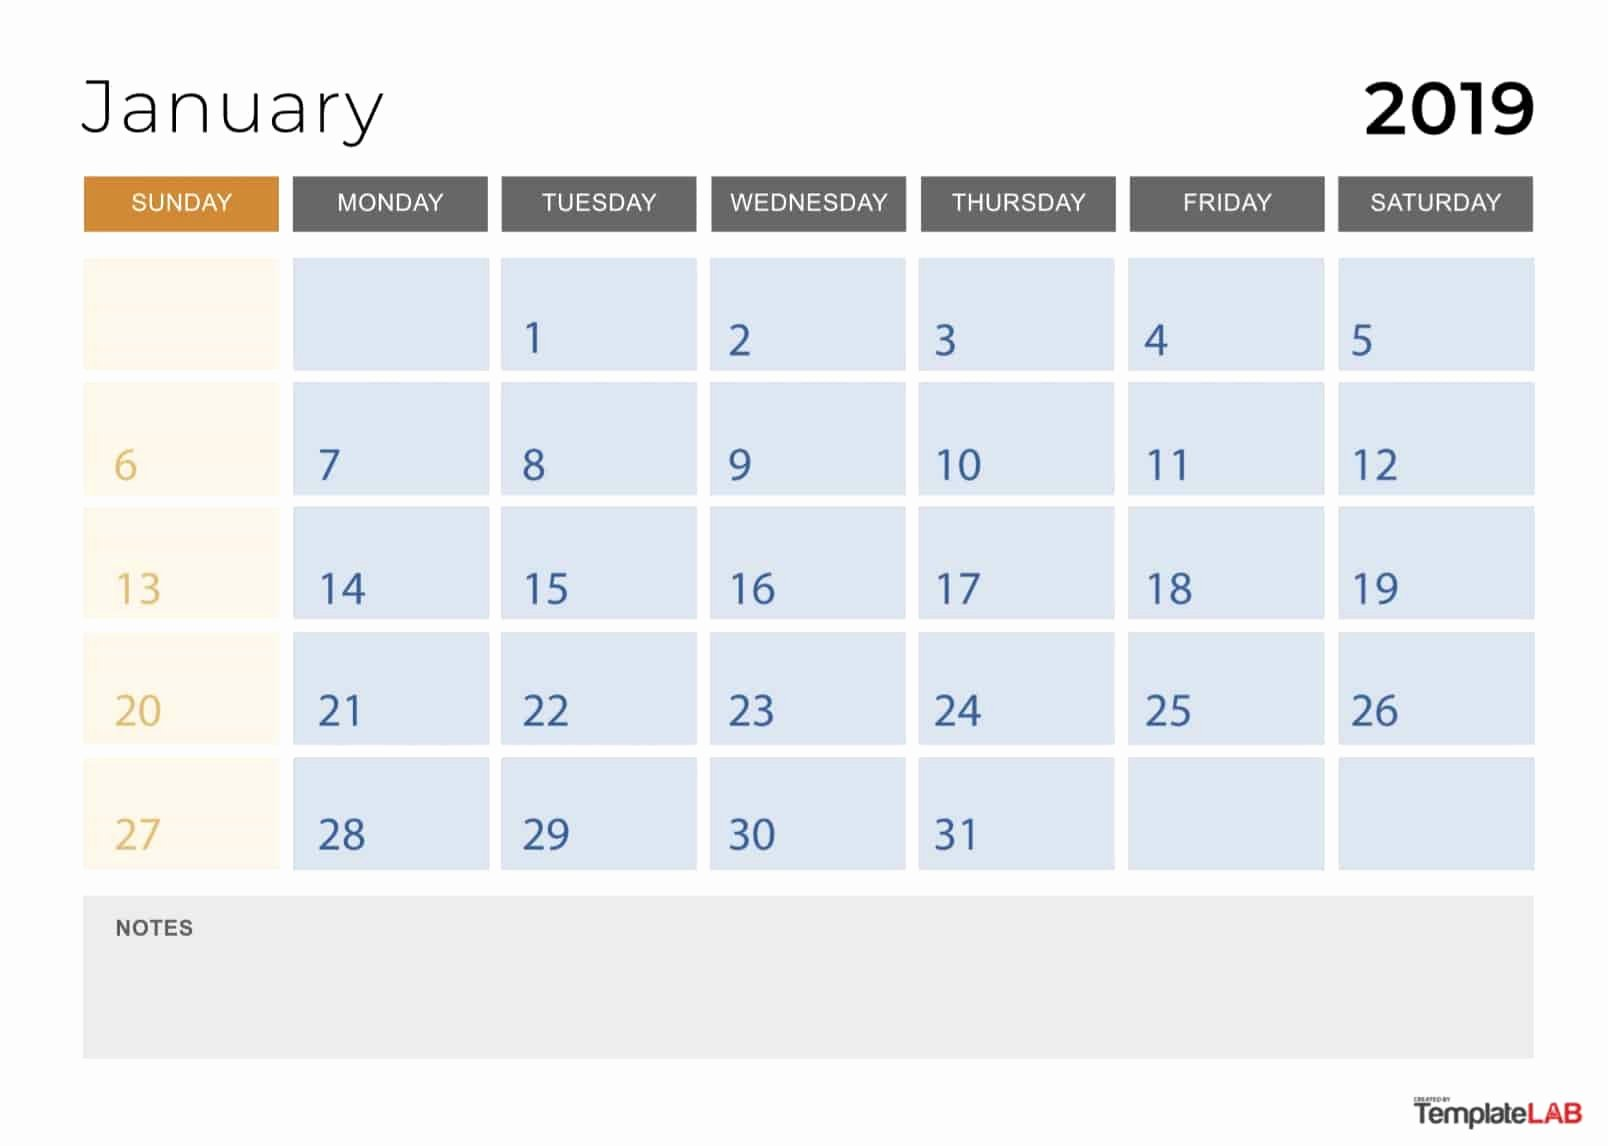 Monthly Calendar Template 2019 Fresh 2019 Printable Calendars [monthly with Holidays Yearly